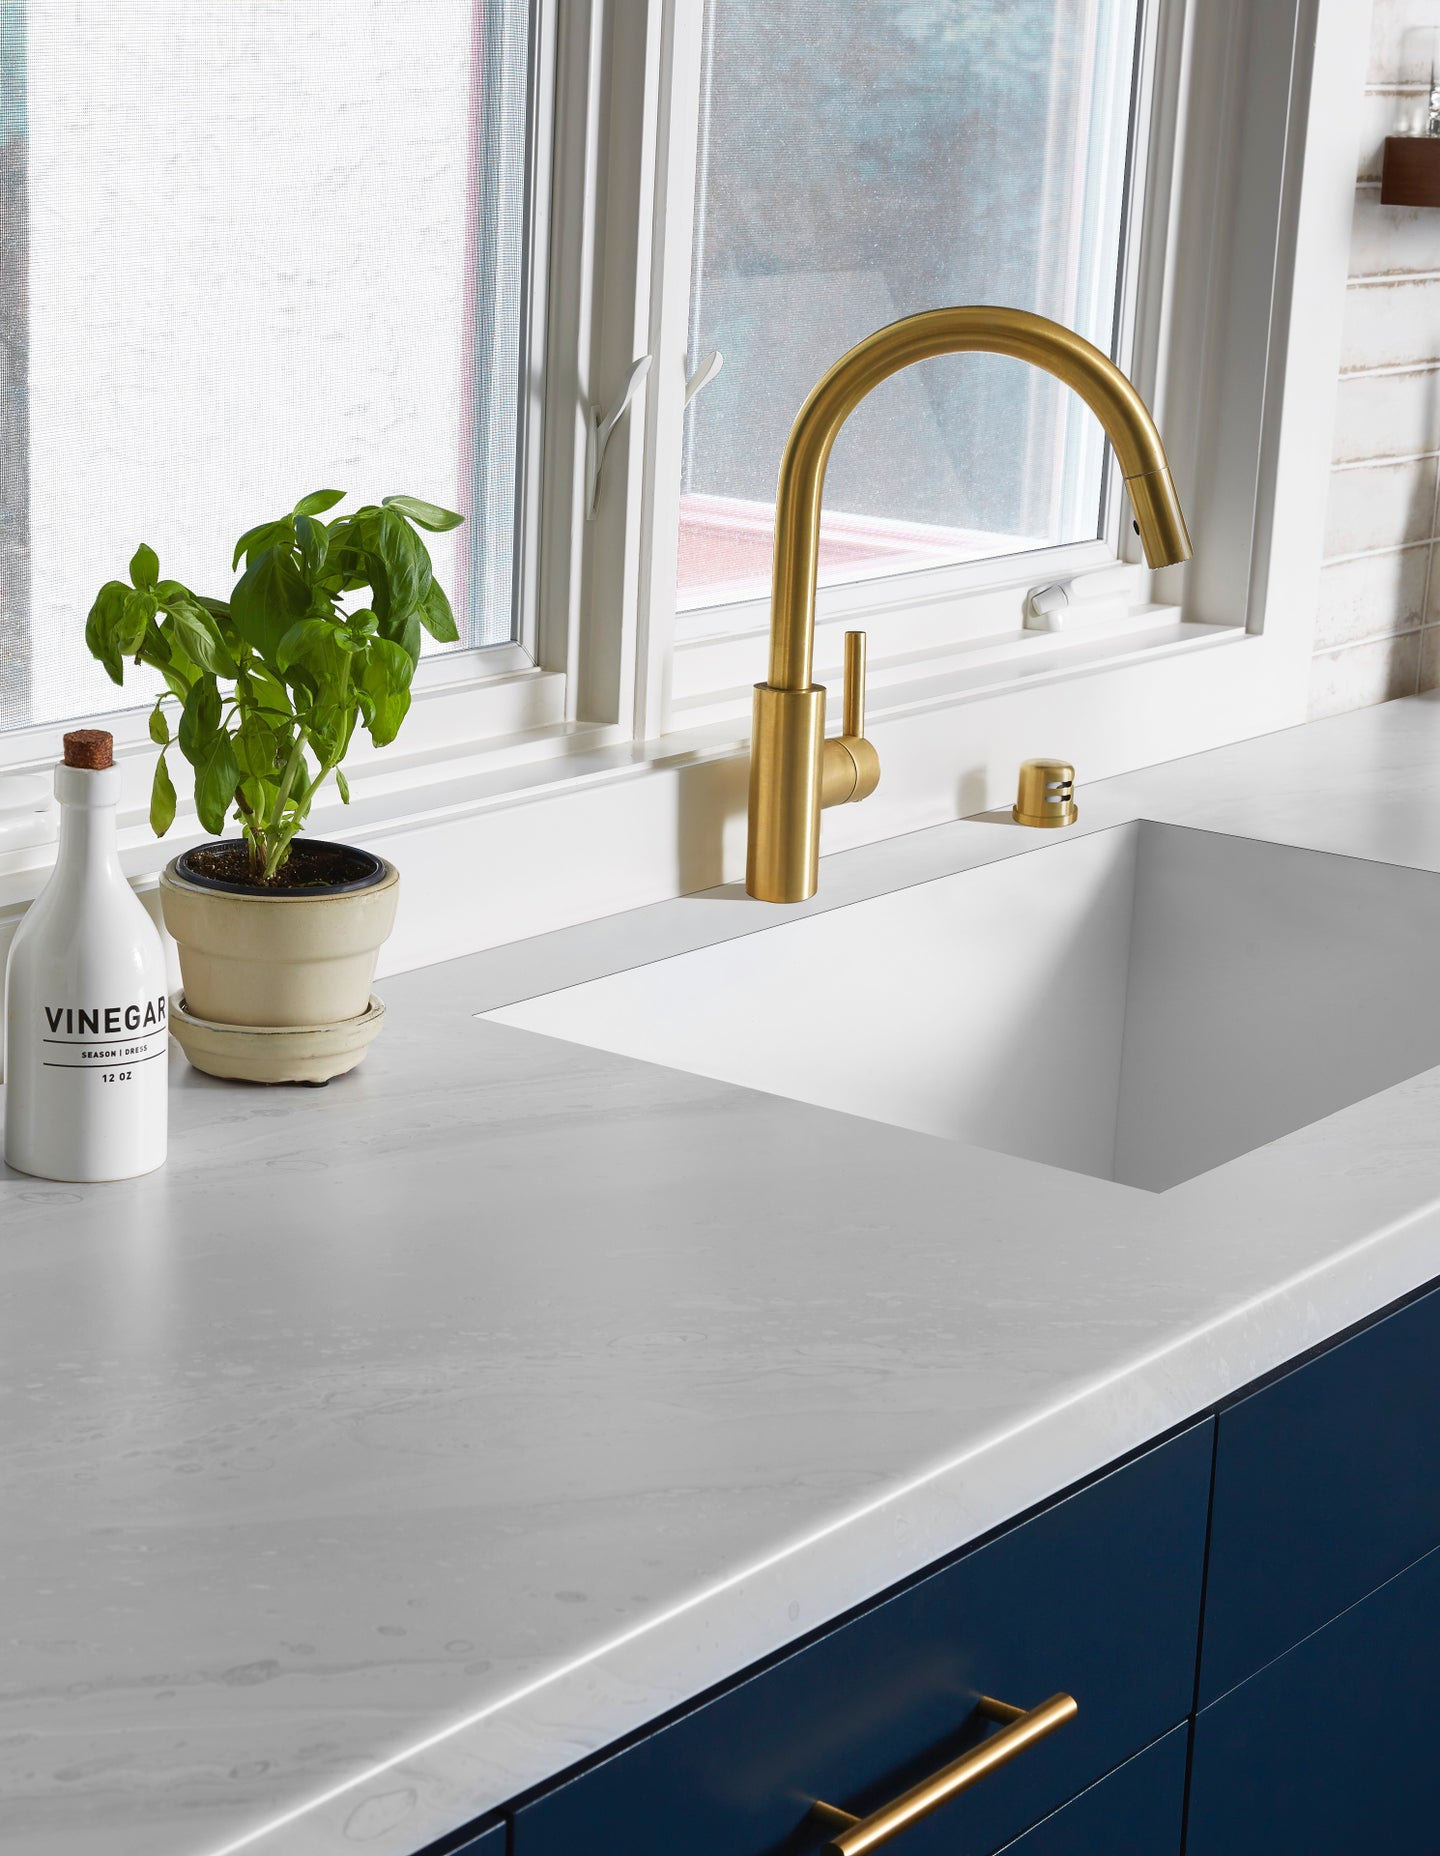 Kitchen countertop with marble